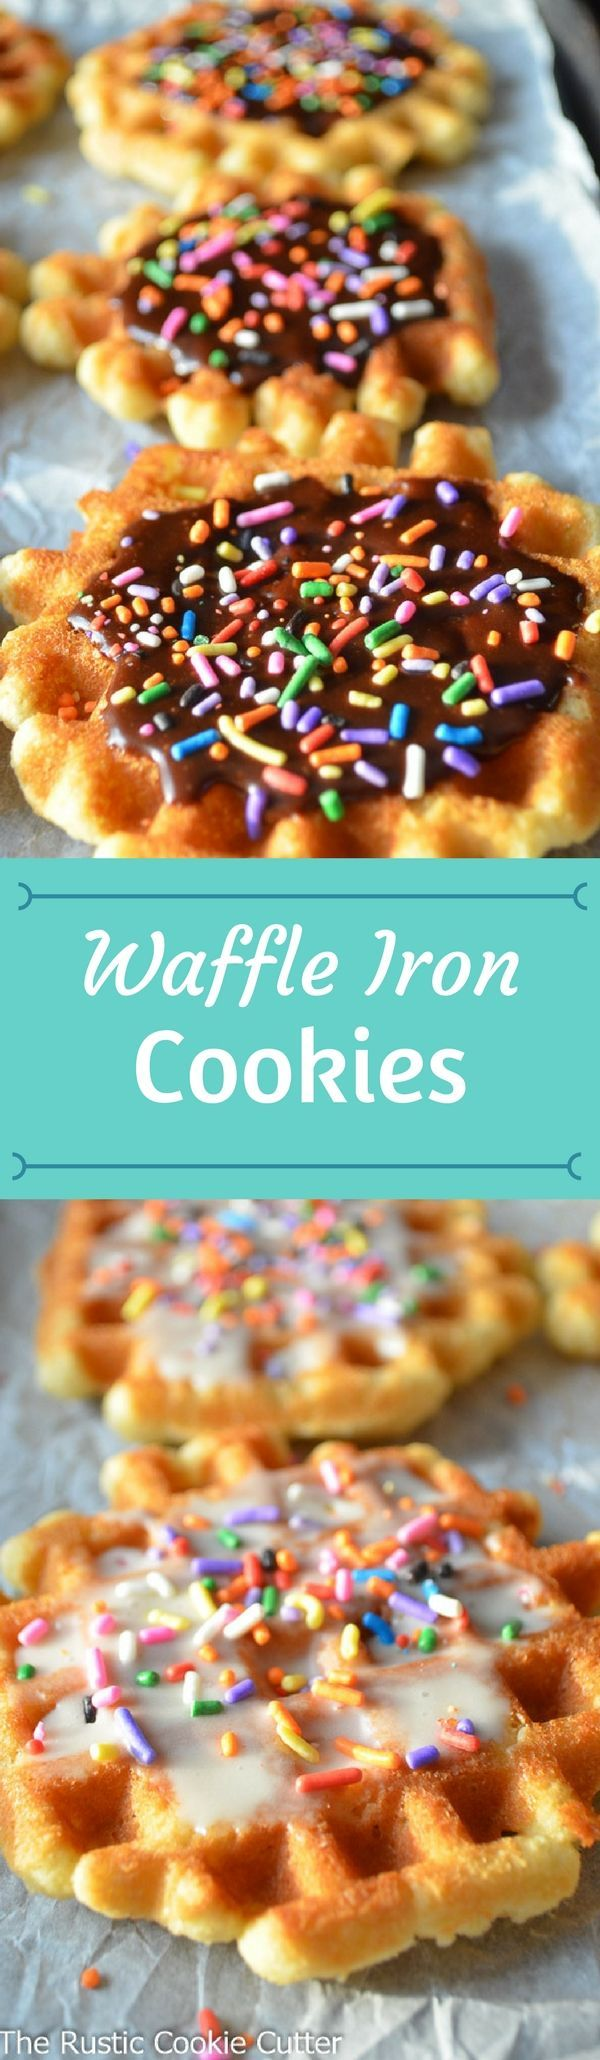 Waffles for dessert?!? Who would have thought you could make Waffle Iron Cookies! ln only 2-3 minutes.